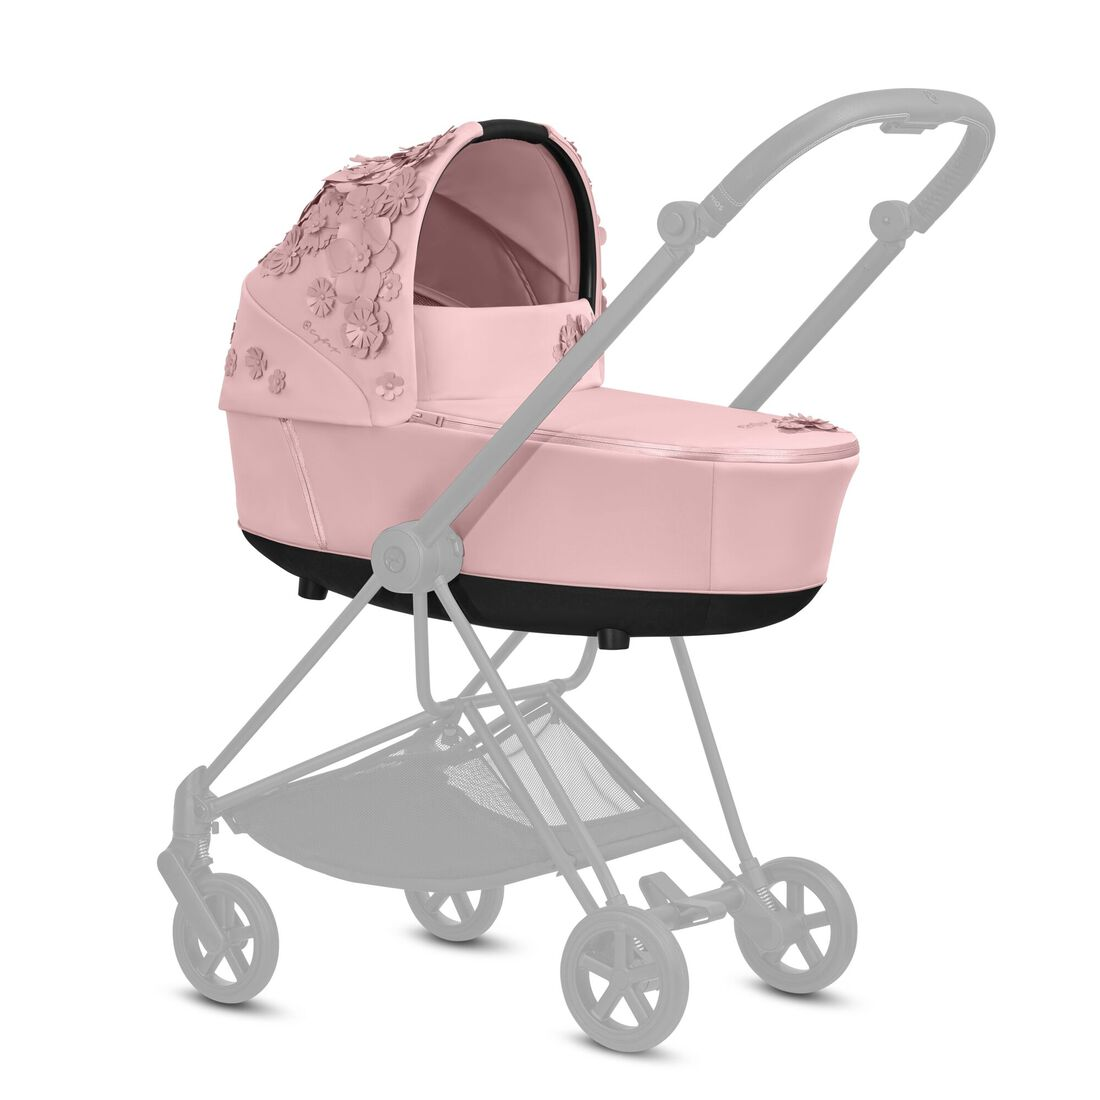 CYBEX Mios Lux Carry Cot - Pale Blush in Pale Blush large image number 4